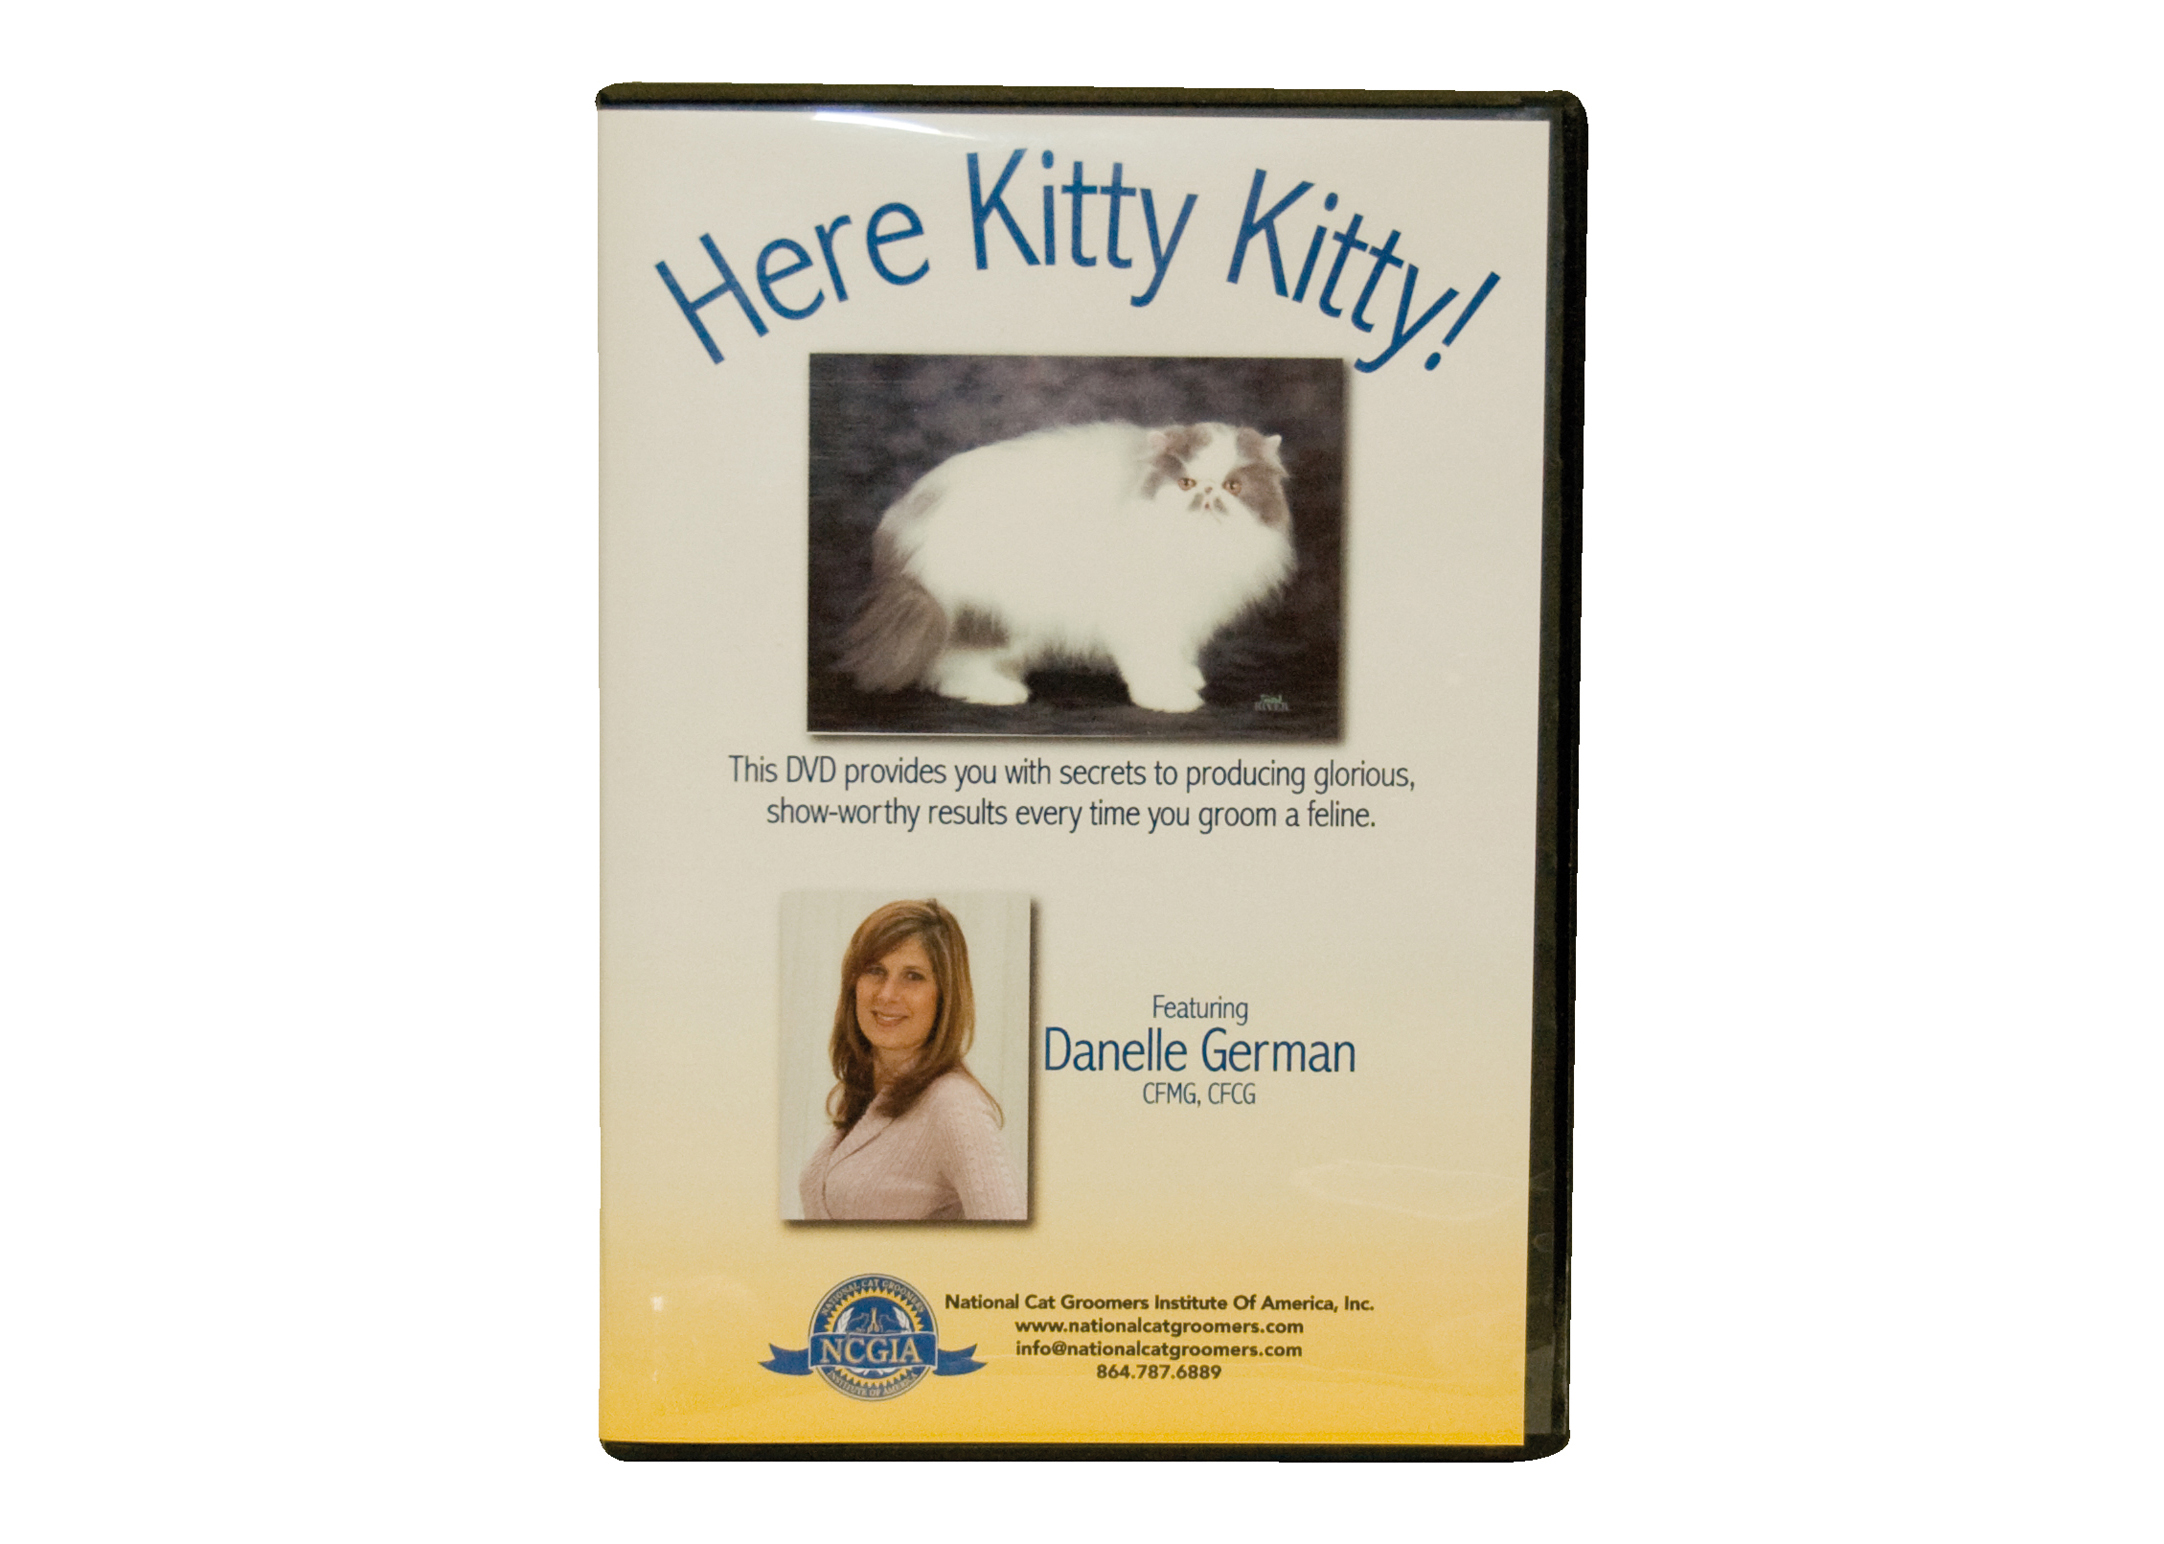 Danelle German's DVD Here Kitty Kitty DVD éducatif